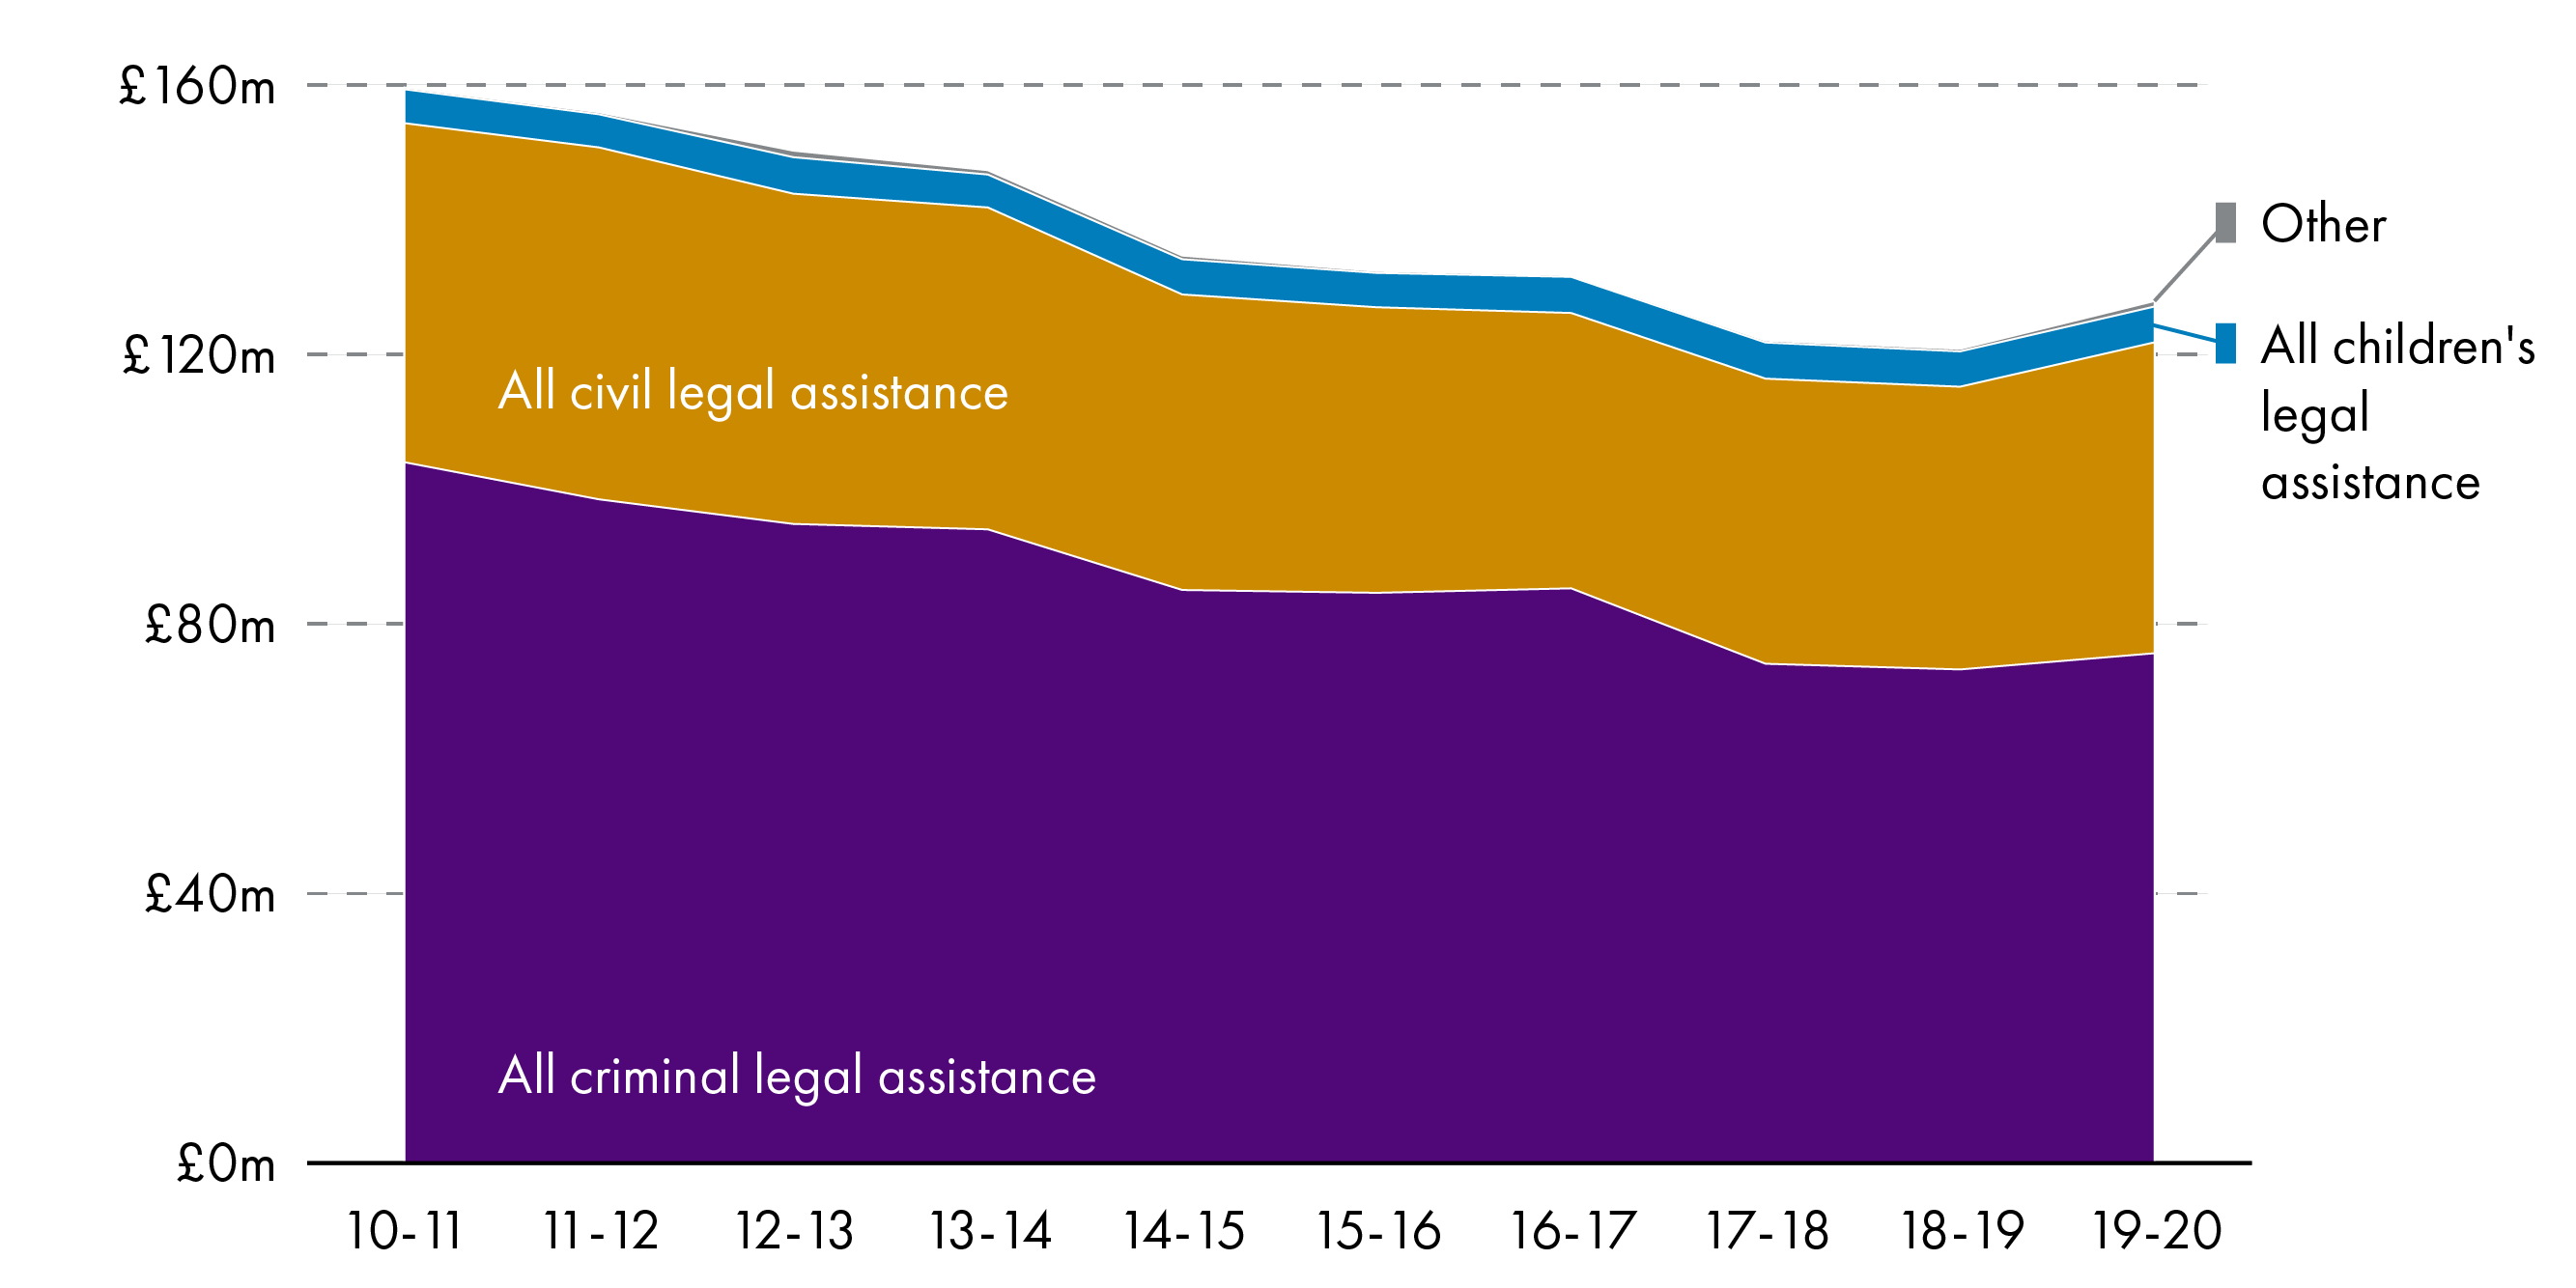 Graph showing reducing expenditure on legal aid between 2010-11 and 2019-20